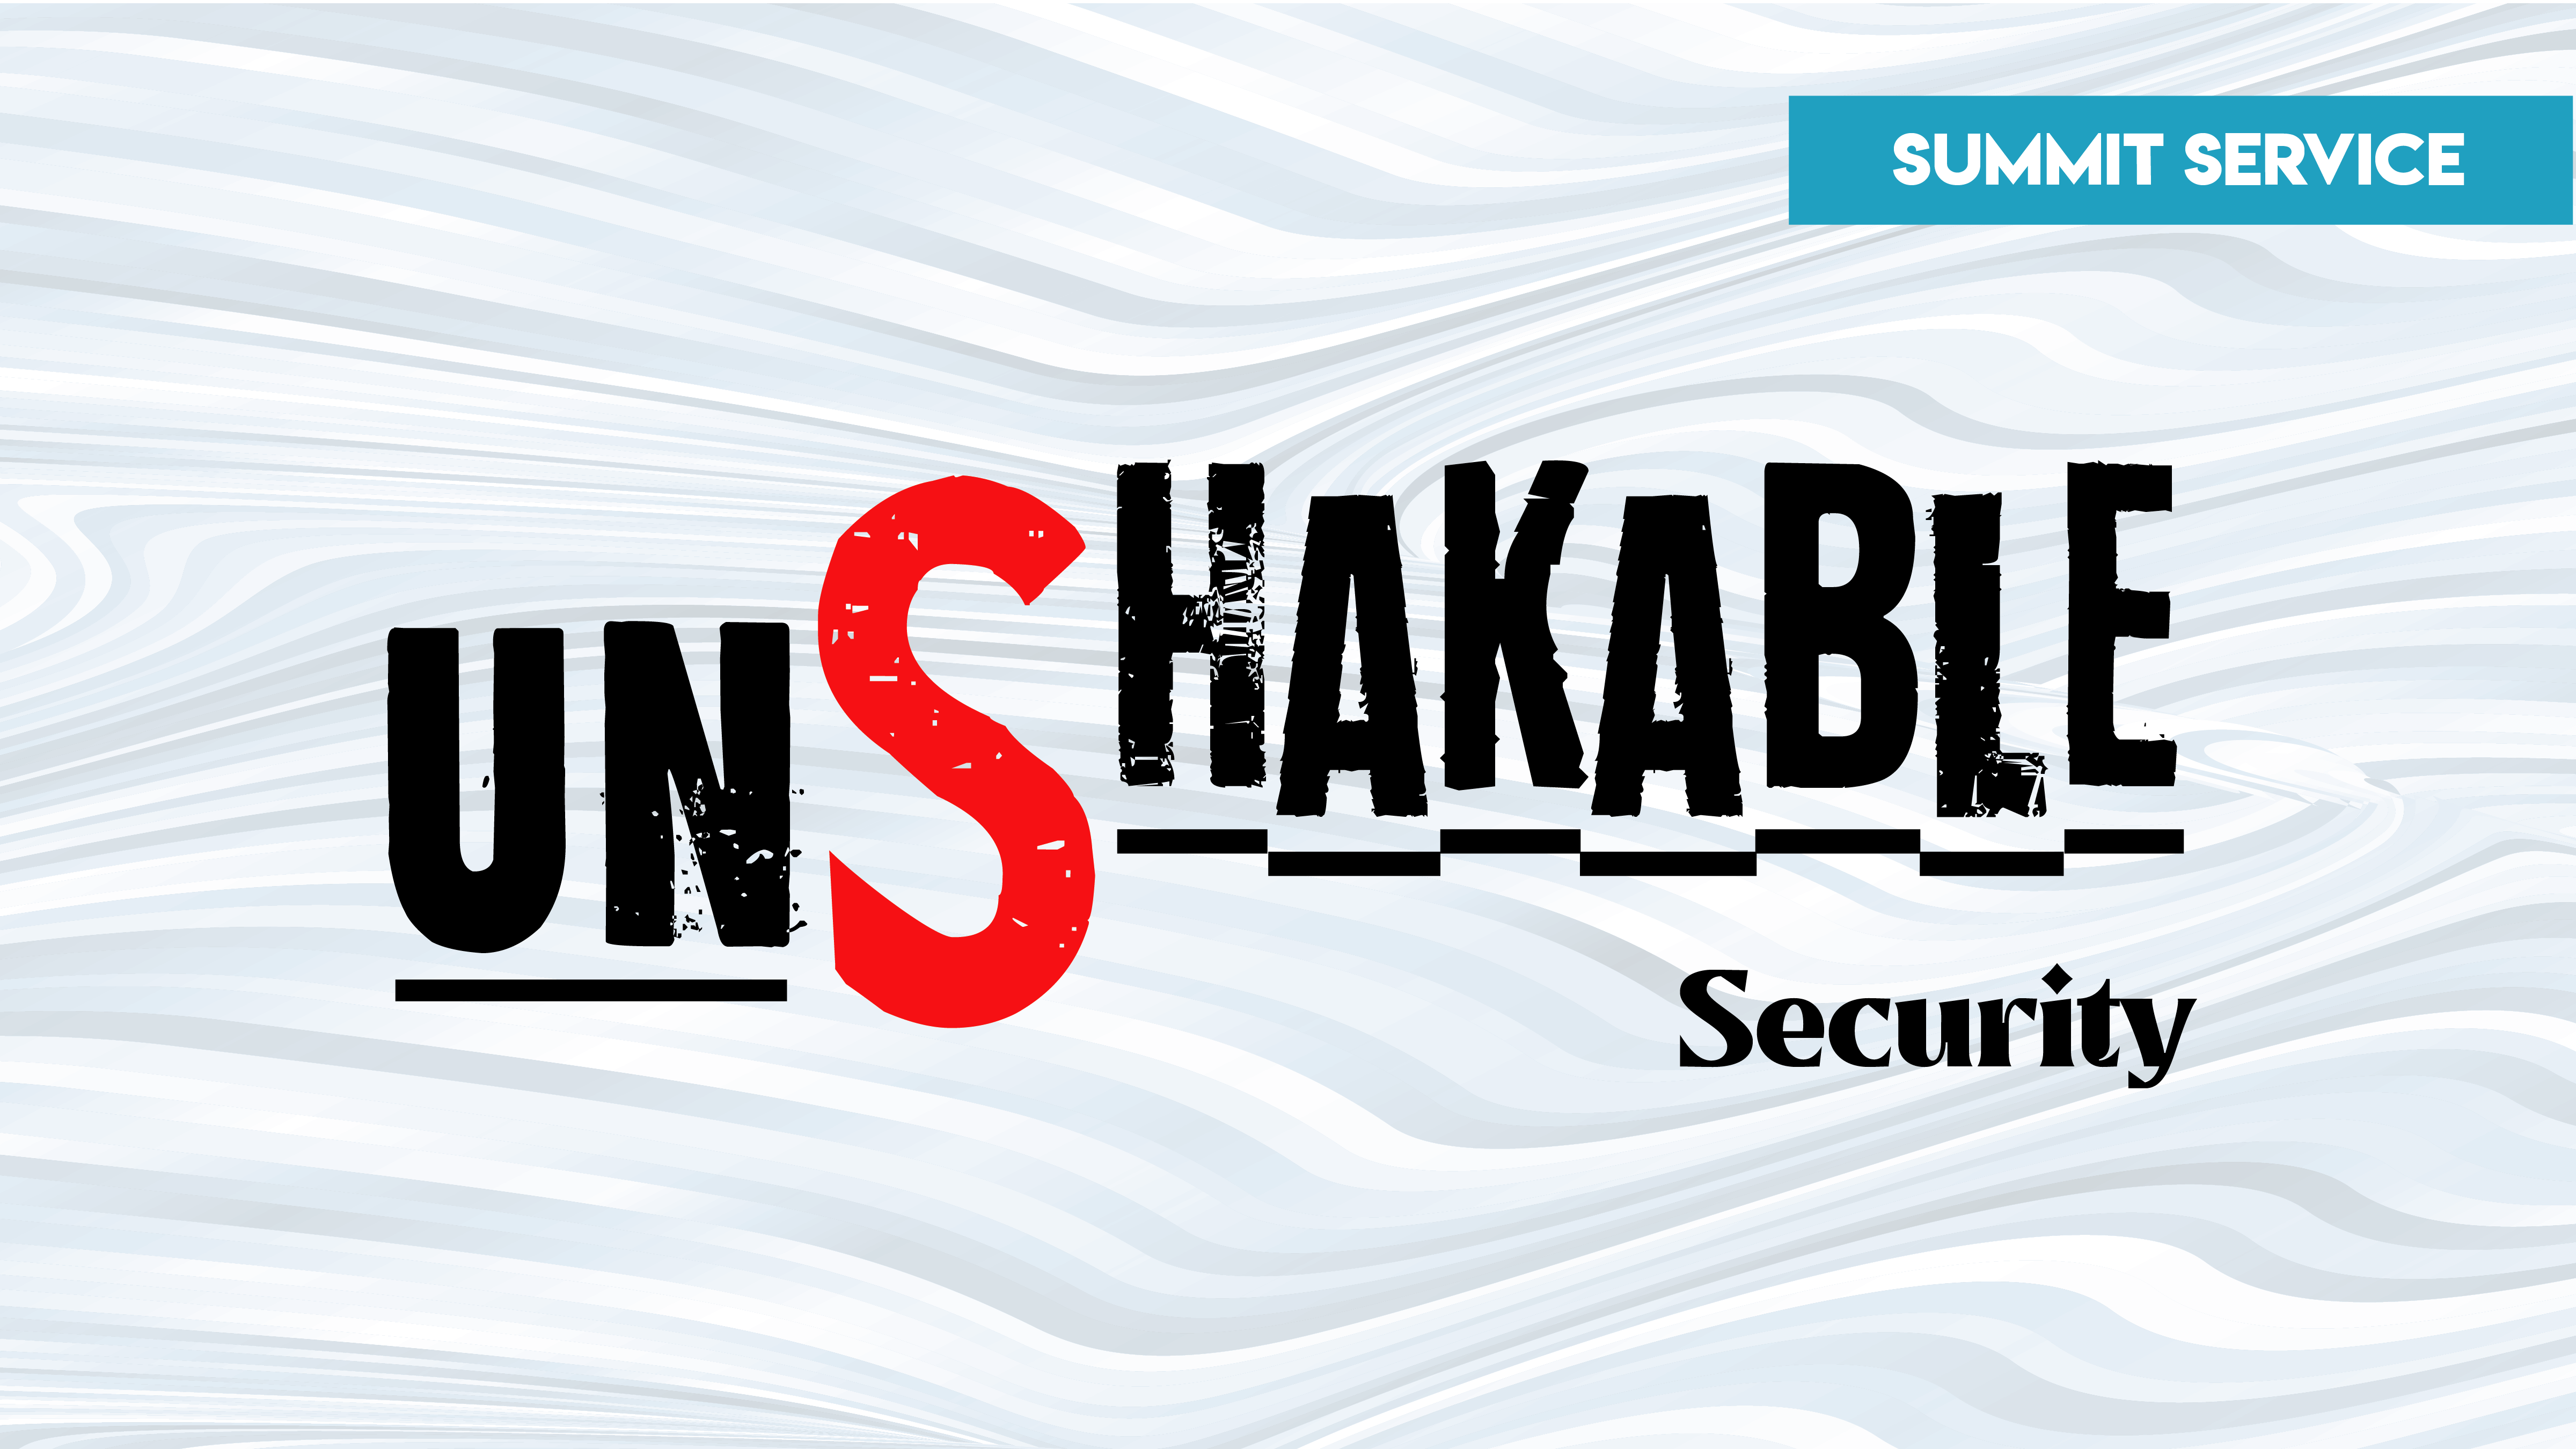 Unshakable : Security